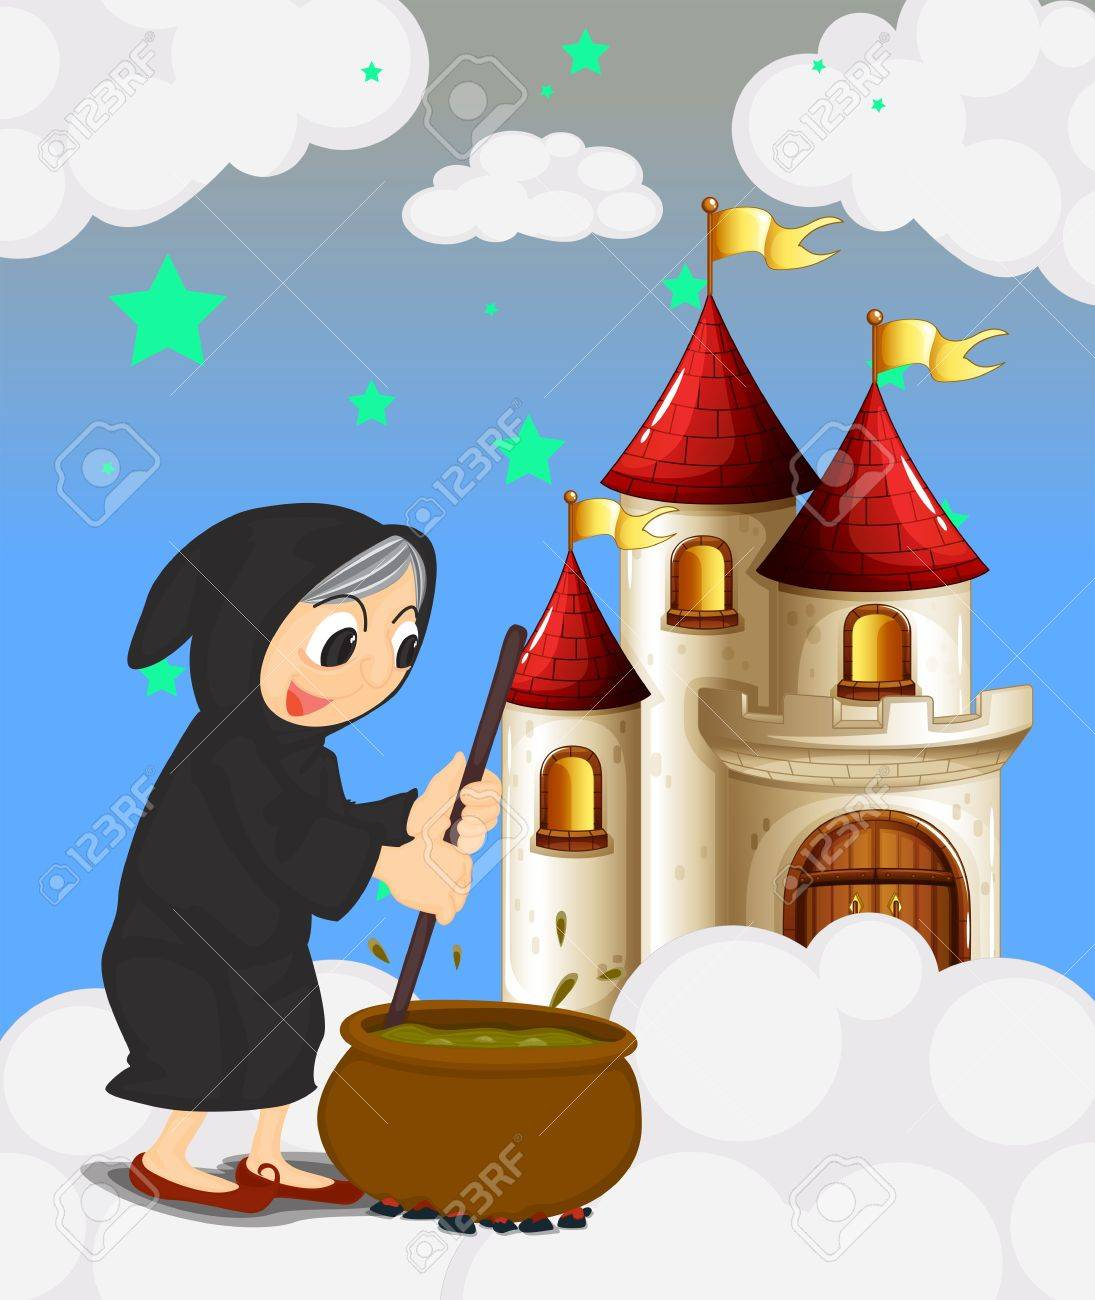 Illustration of a witch and her magical pot near the castle Stock Vector - 18607836